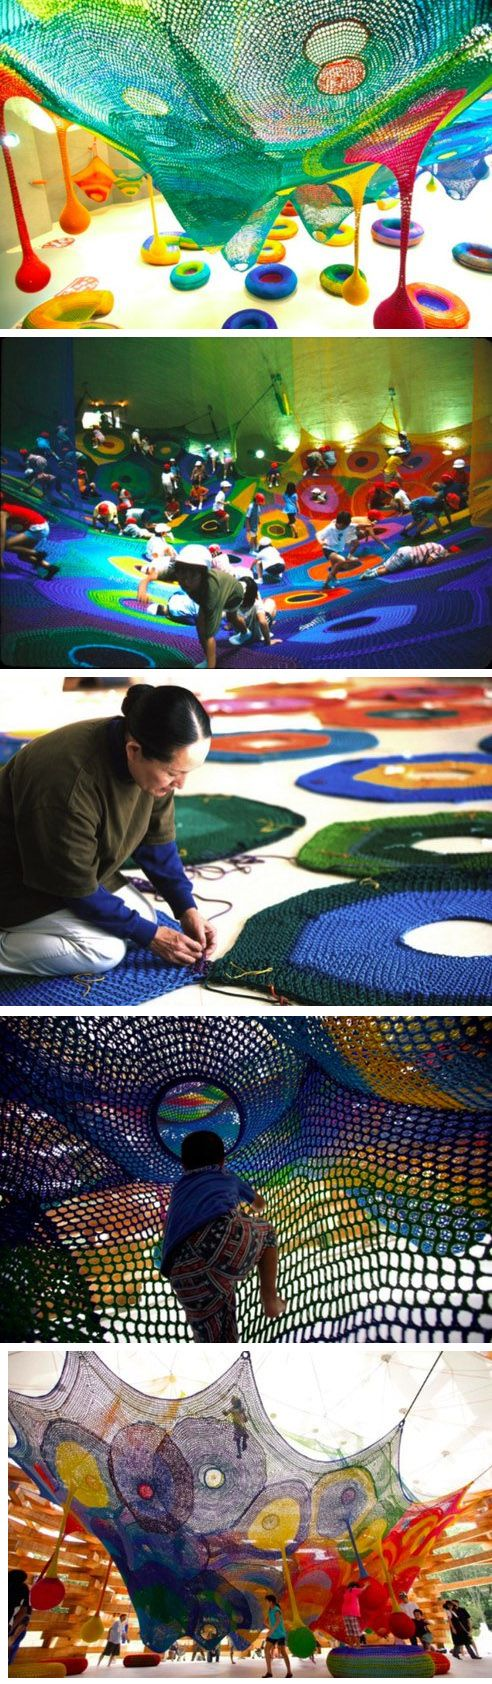 Japanese-born fiber artist Toshiko Horiuchi MacAdam's crocheted fabulous playgrounds for children ( http://netplayworks.com/NetPlayWorks/Projects/Projects.html )